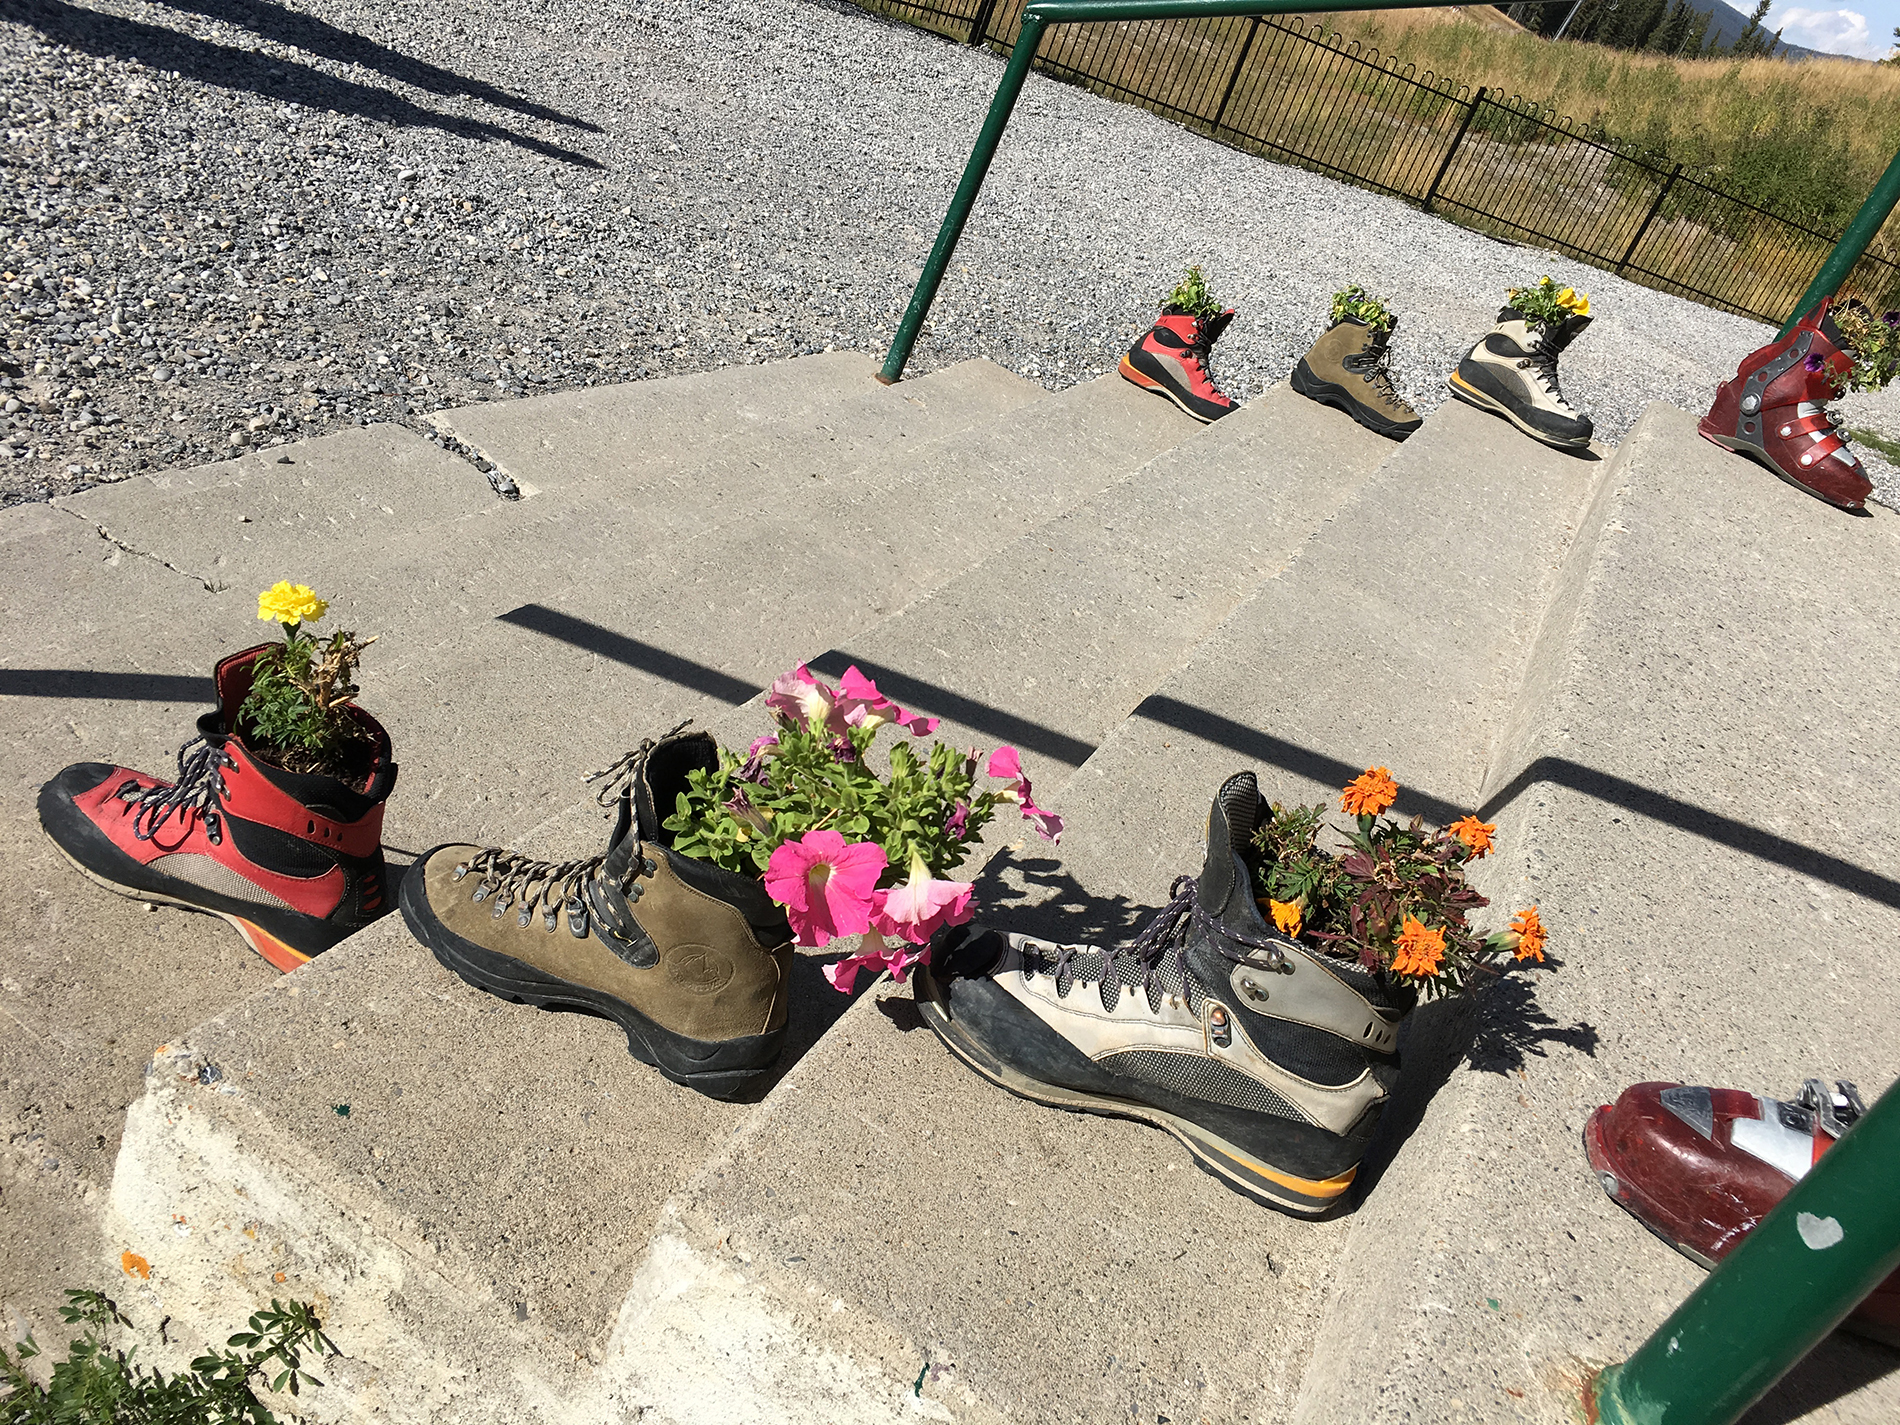 Hiking Boot planter display outside of the main lodge at the Mt. Norquay Ski Area.